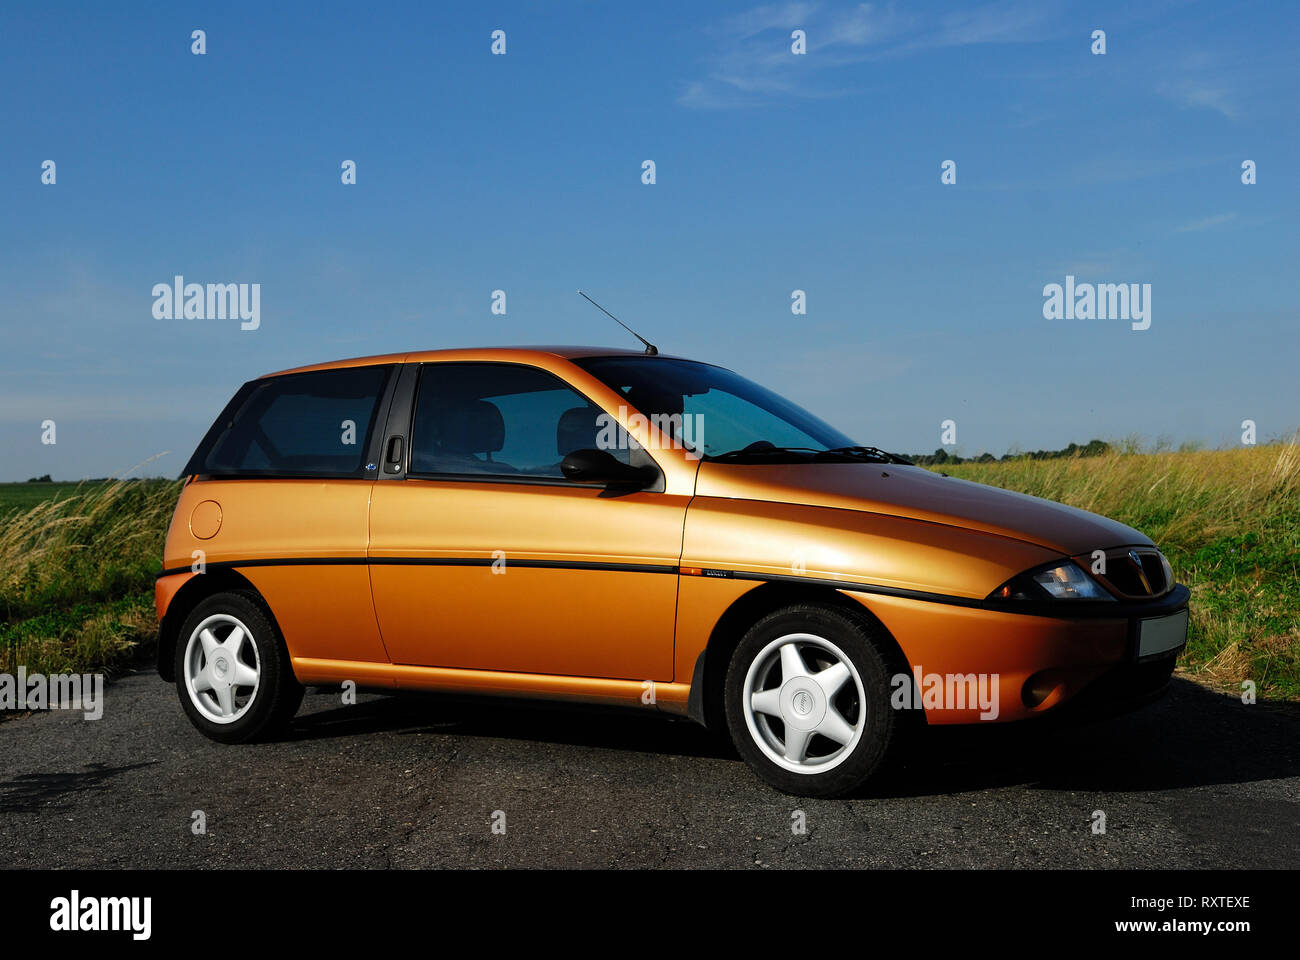 car, service, wheel, business, safety, sale, lift, brakes, replacement, staff, professional, sale, transport, - Stock Image